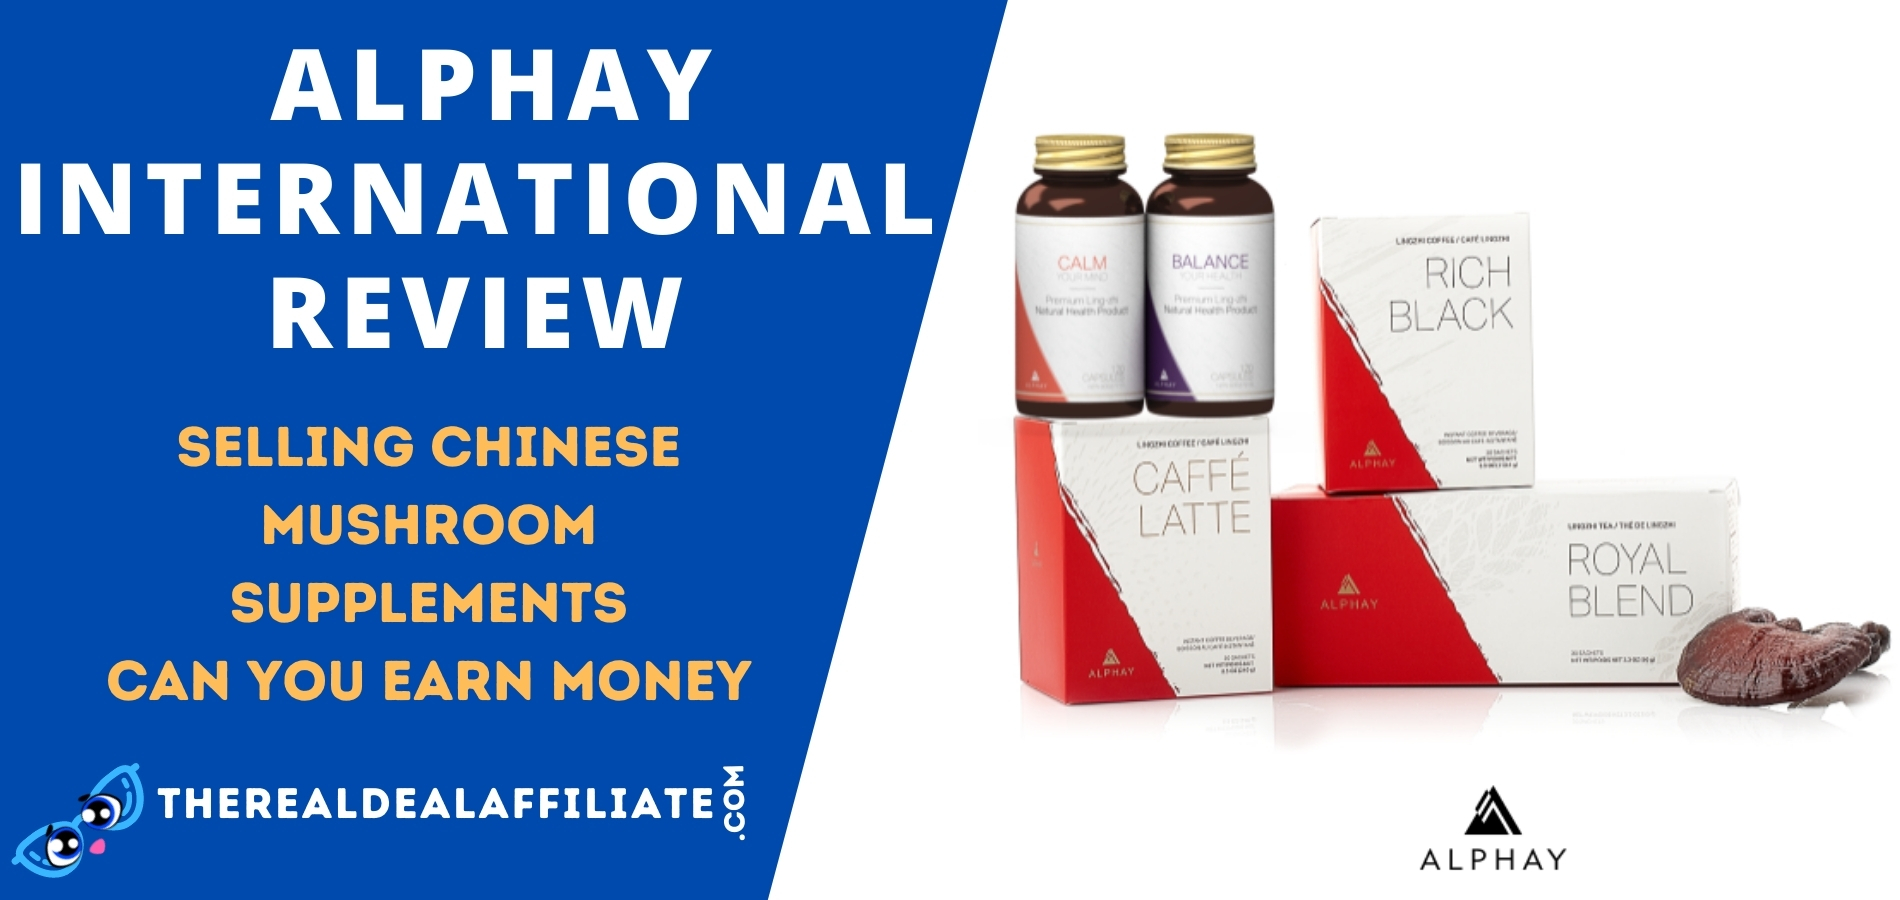 Alphay International Feature Image